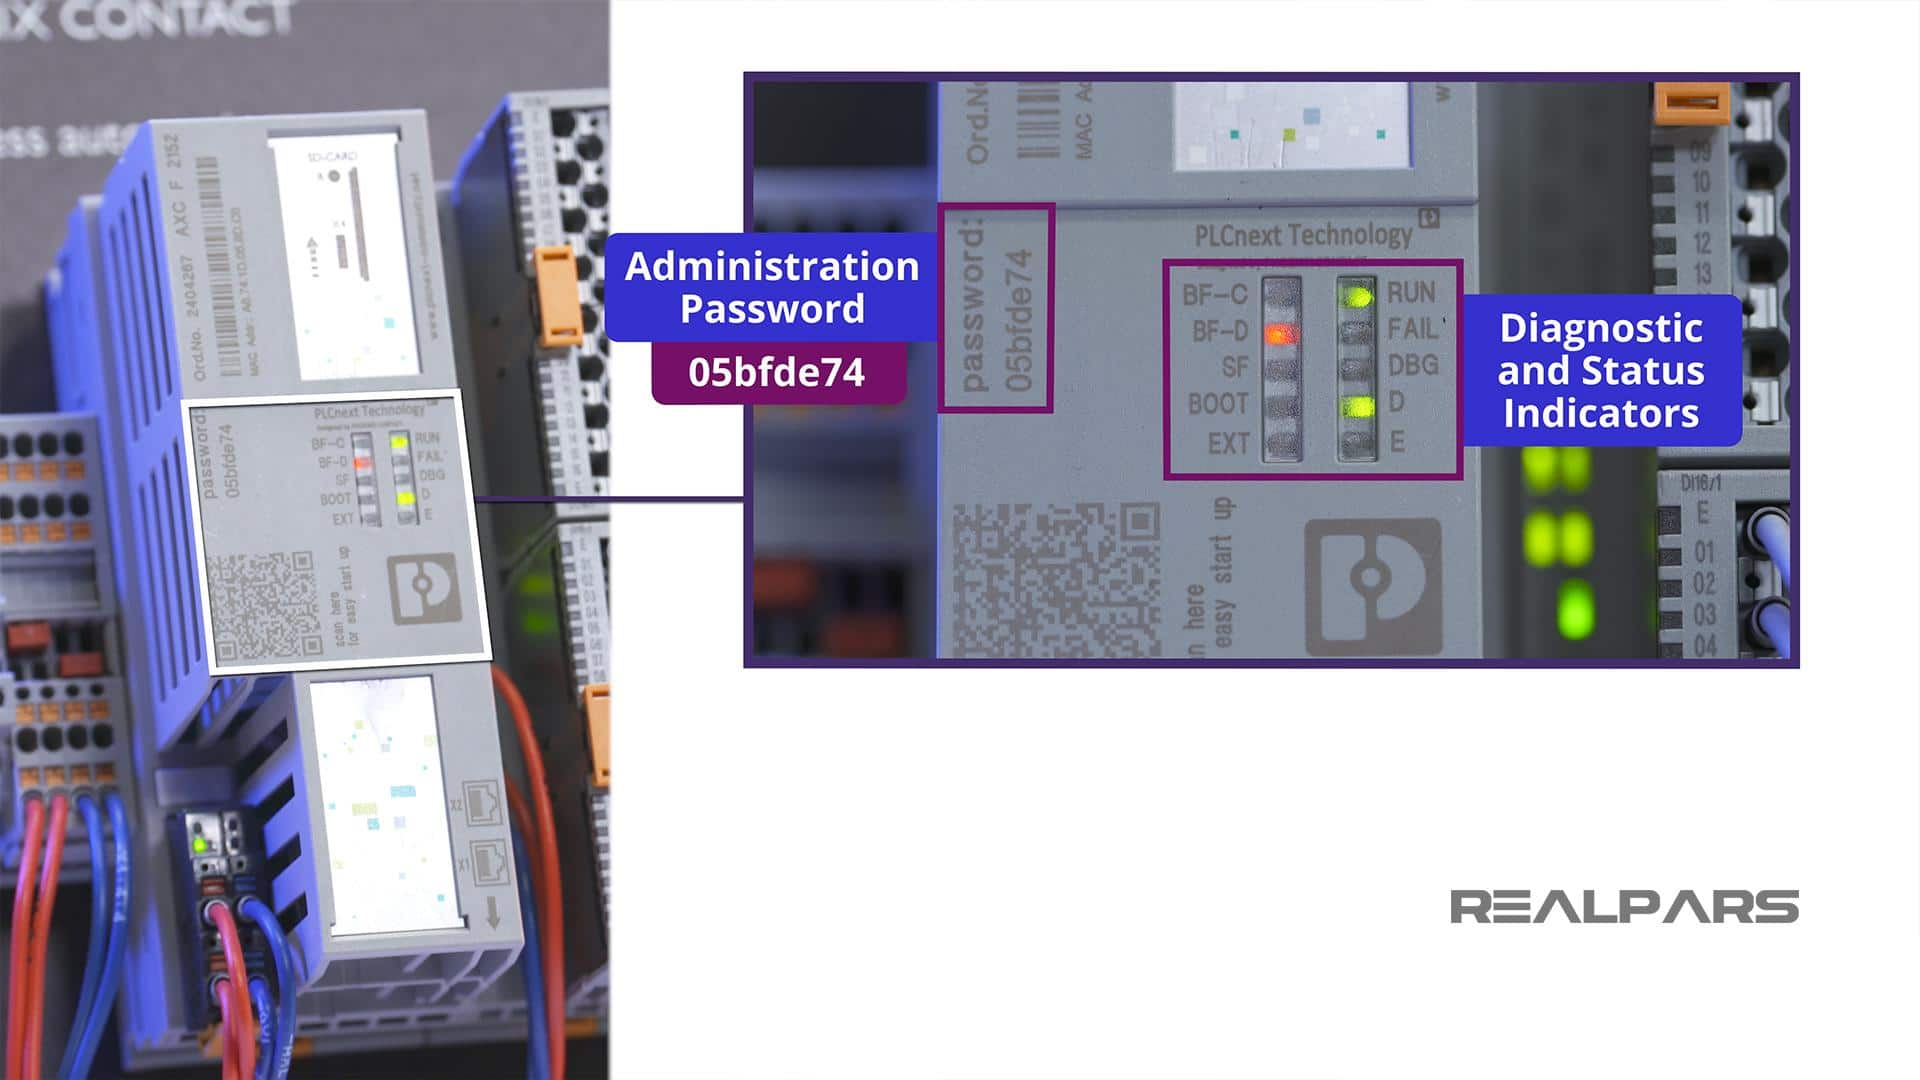 Administration Password and Status LED indicators